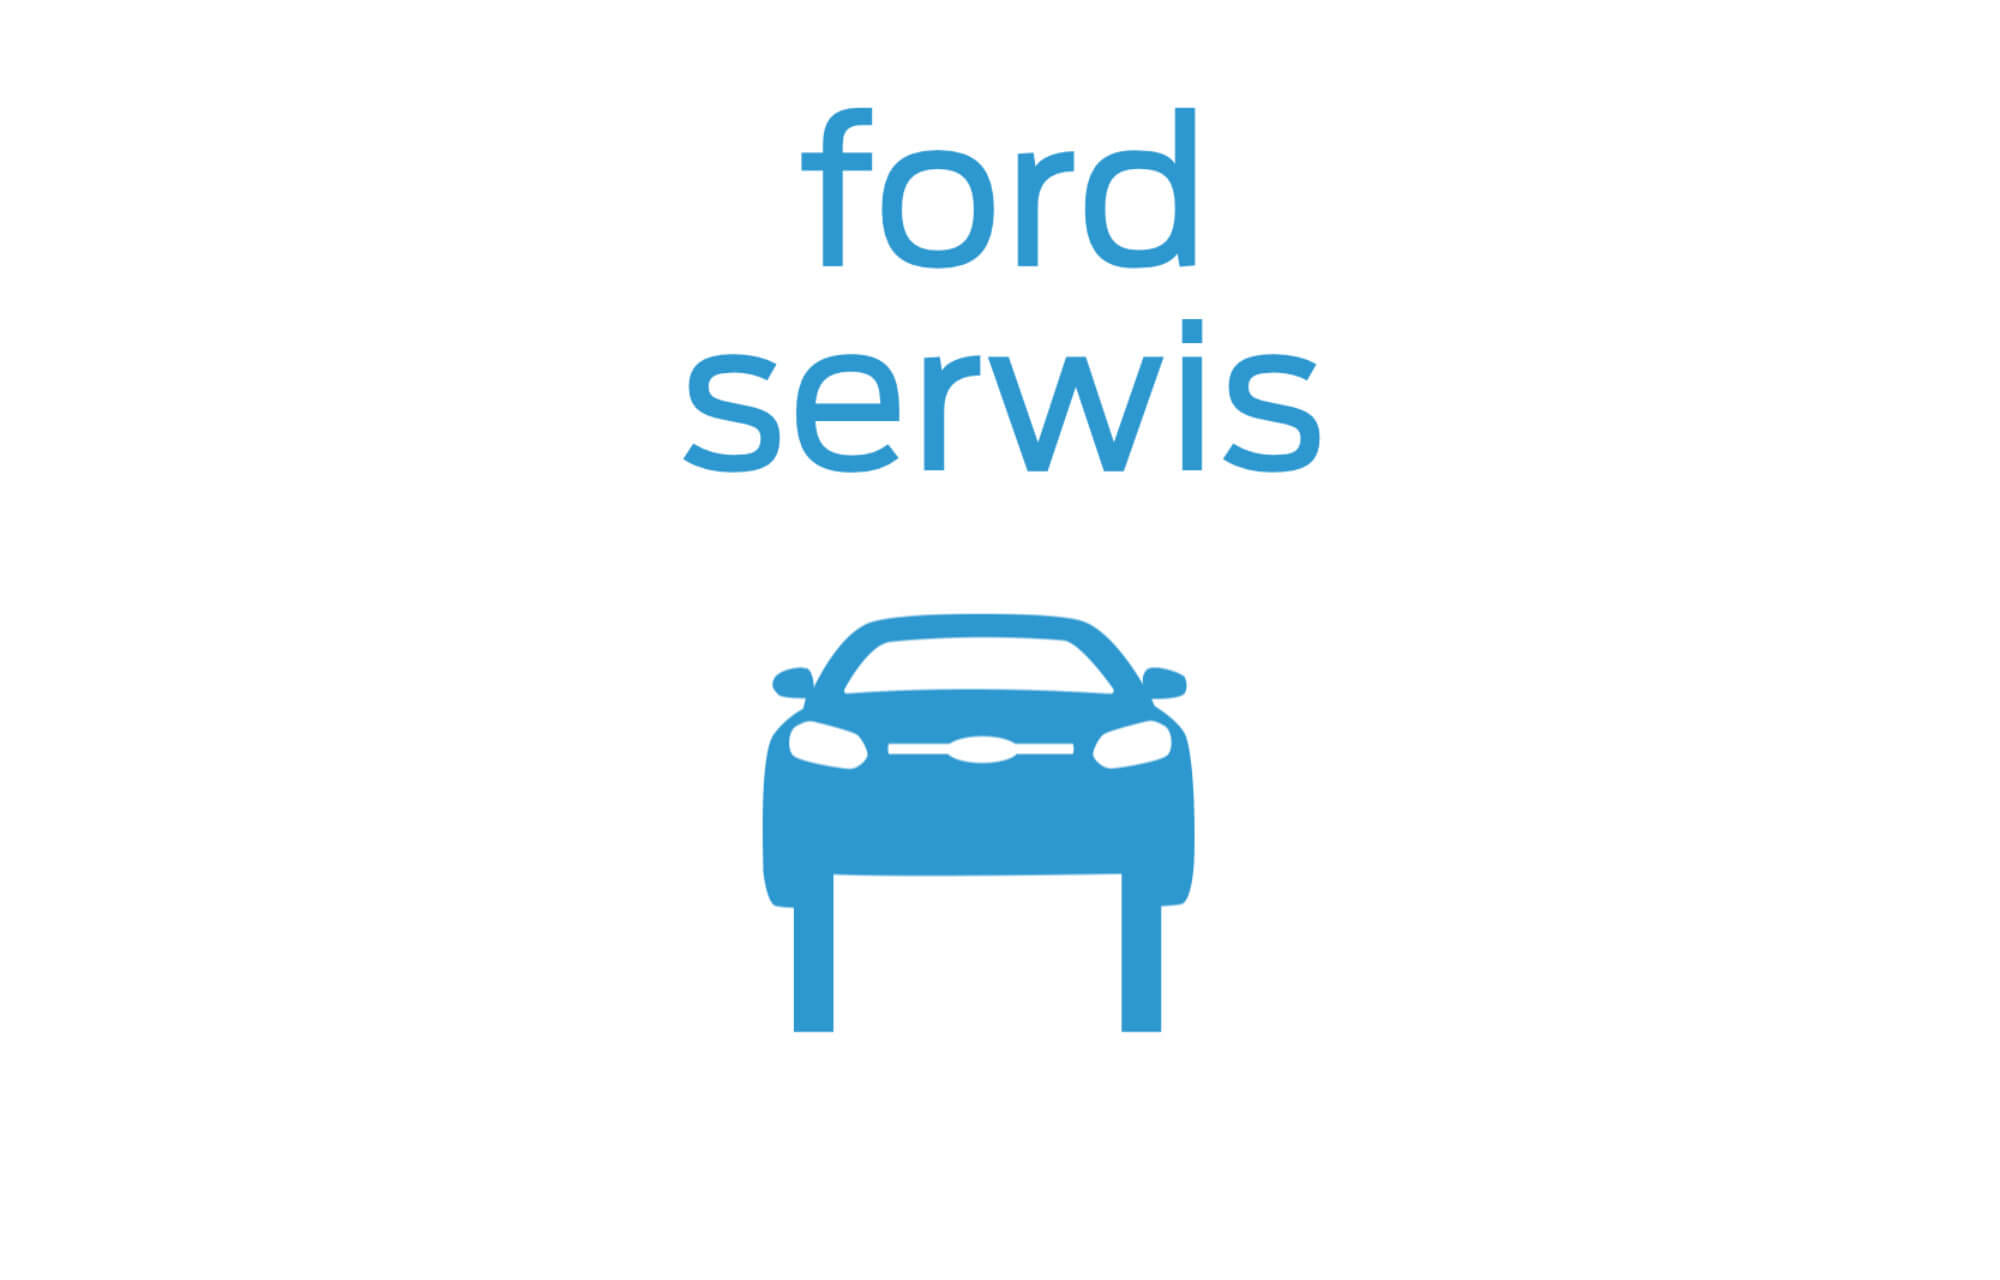 Ford Serwis